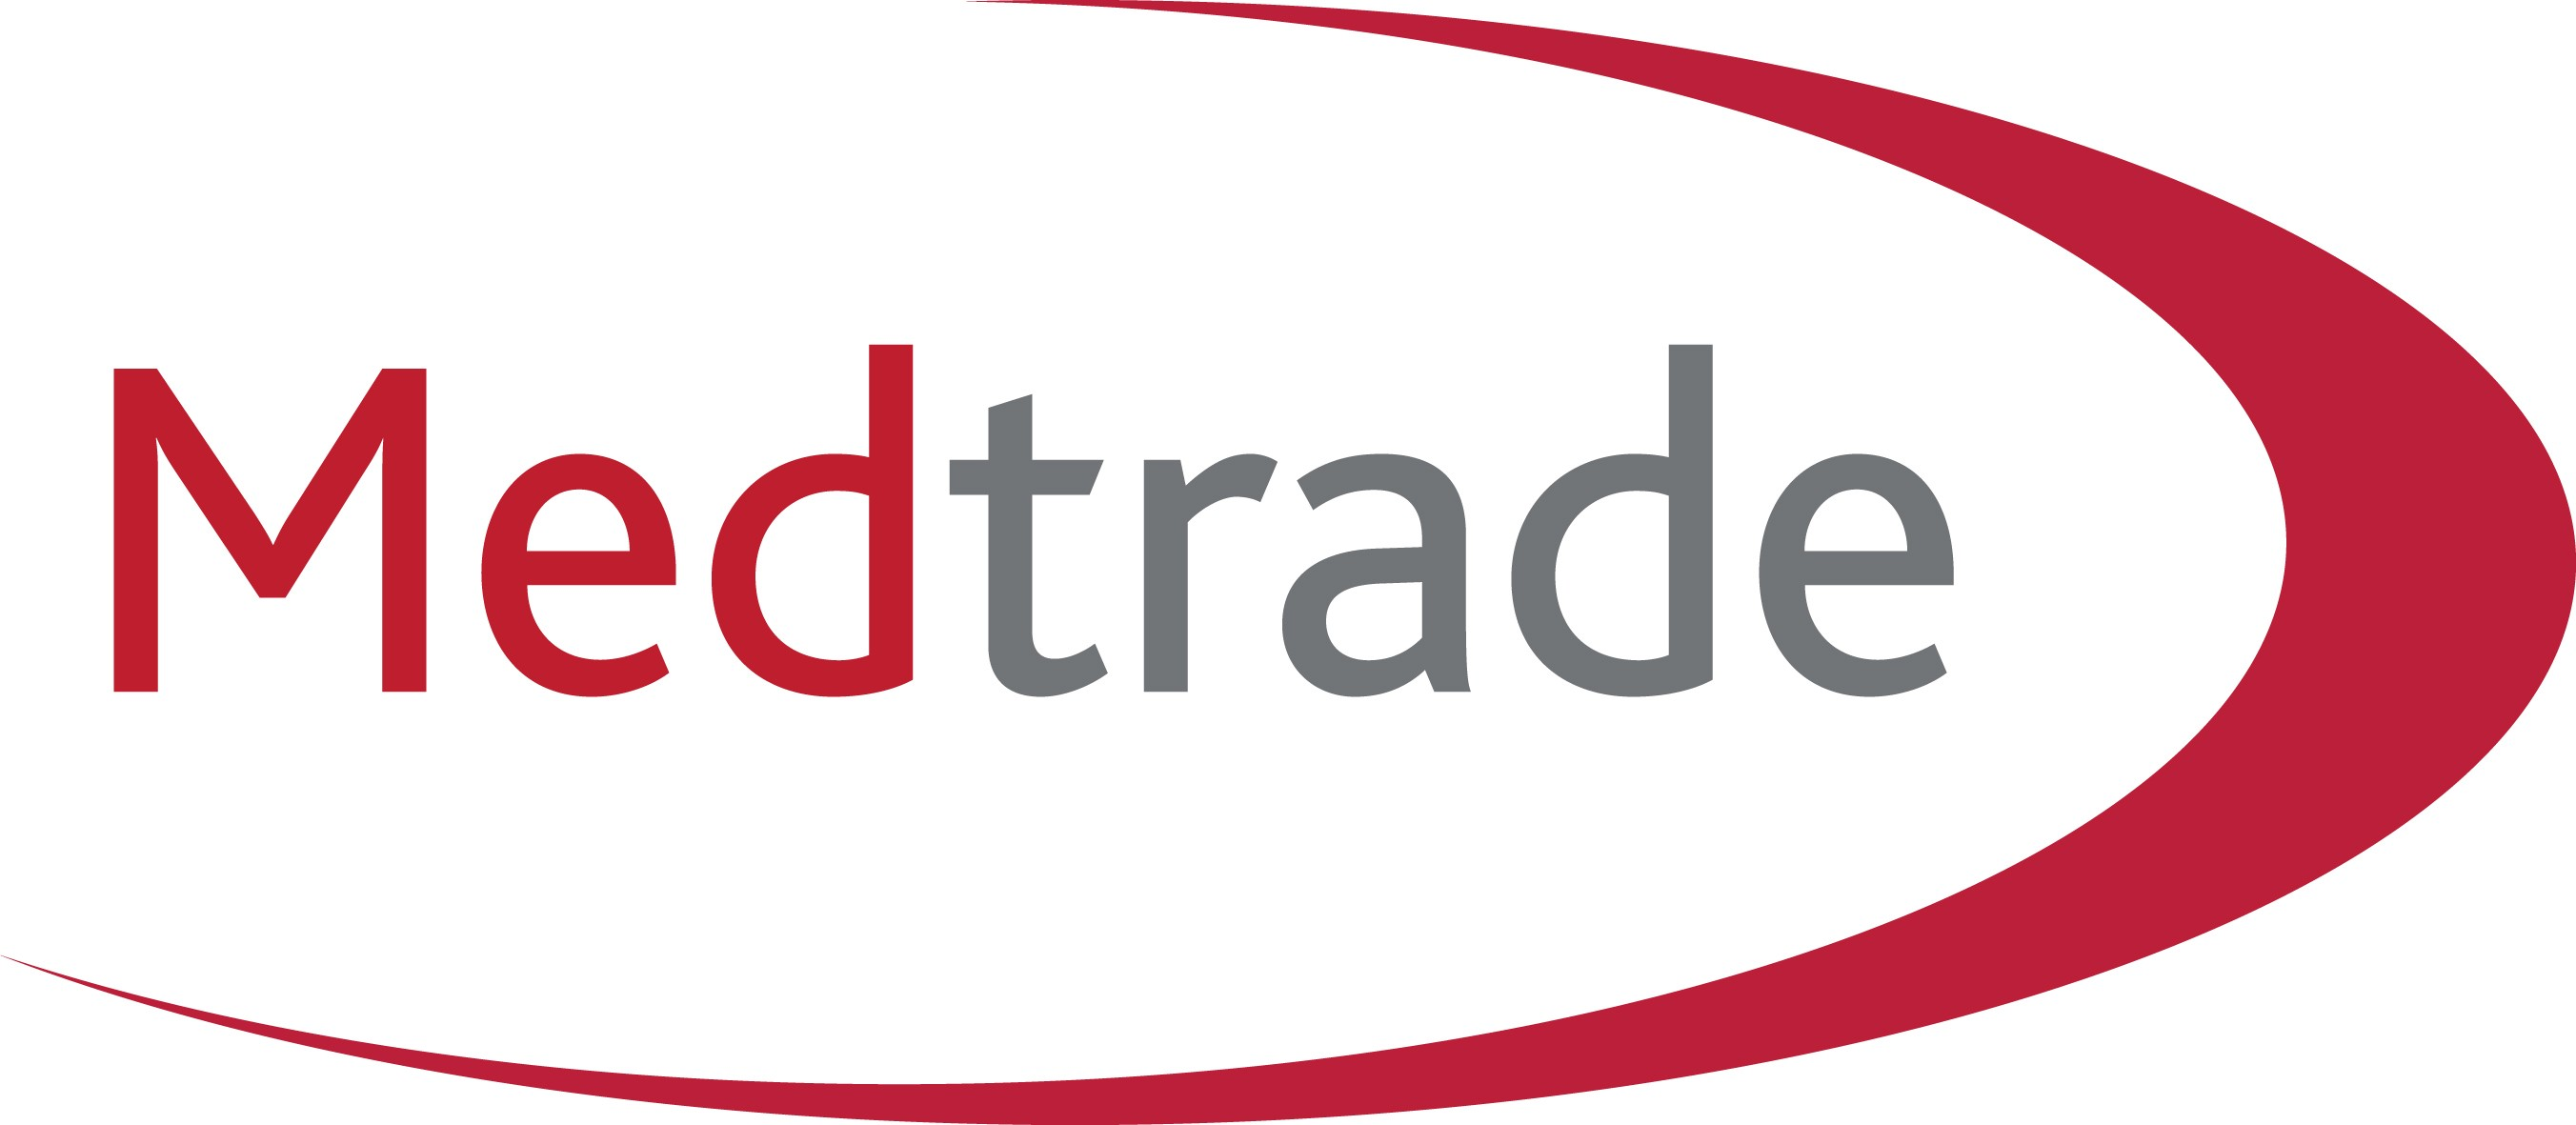 Medtrade Products Limited | LinkedIn